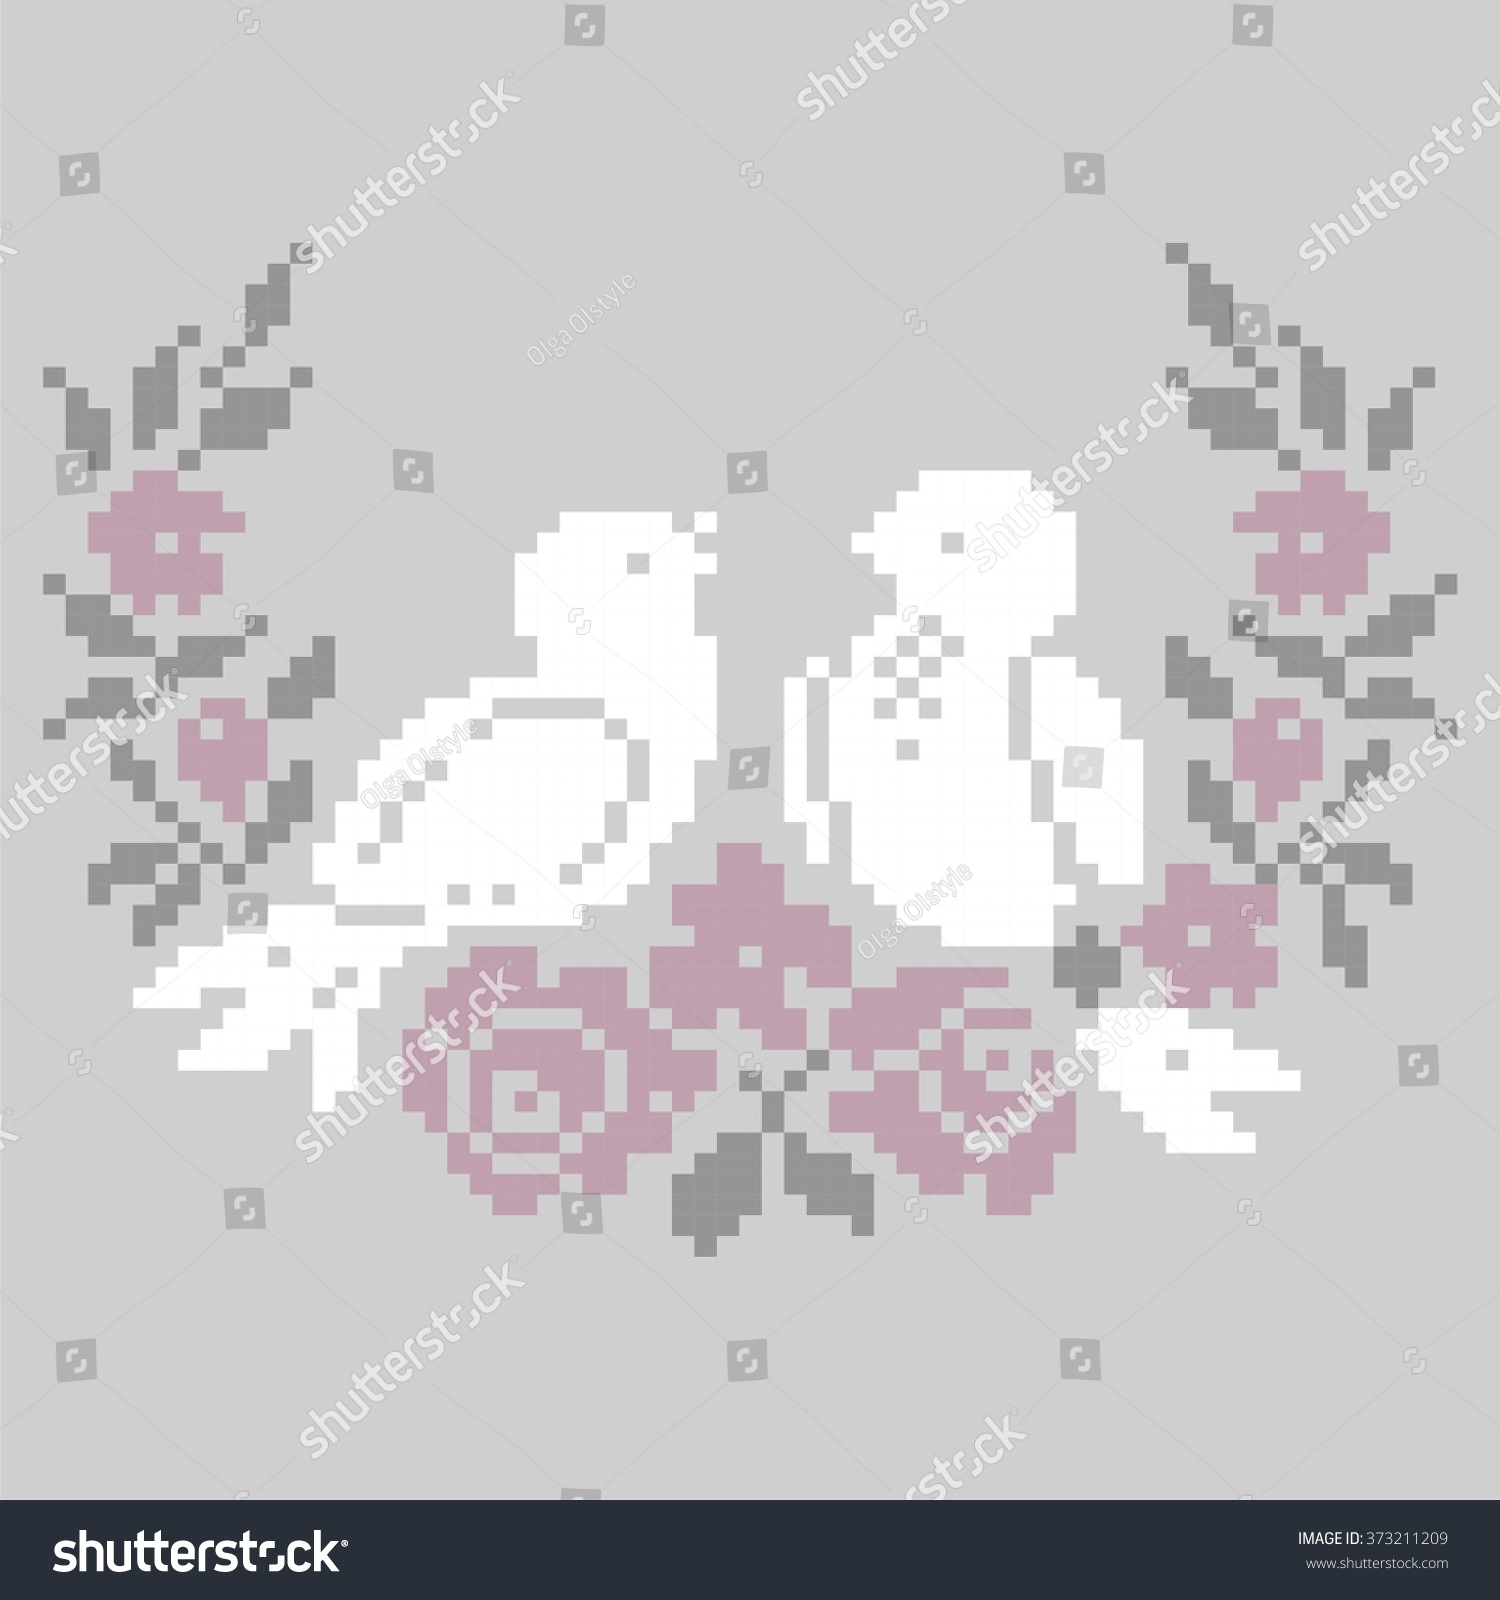 Template Knitting Embroidery Crossstitch Birds Flowers Stock Vector ...